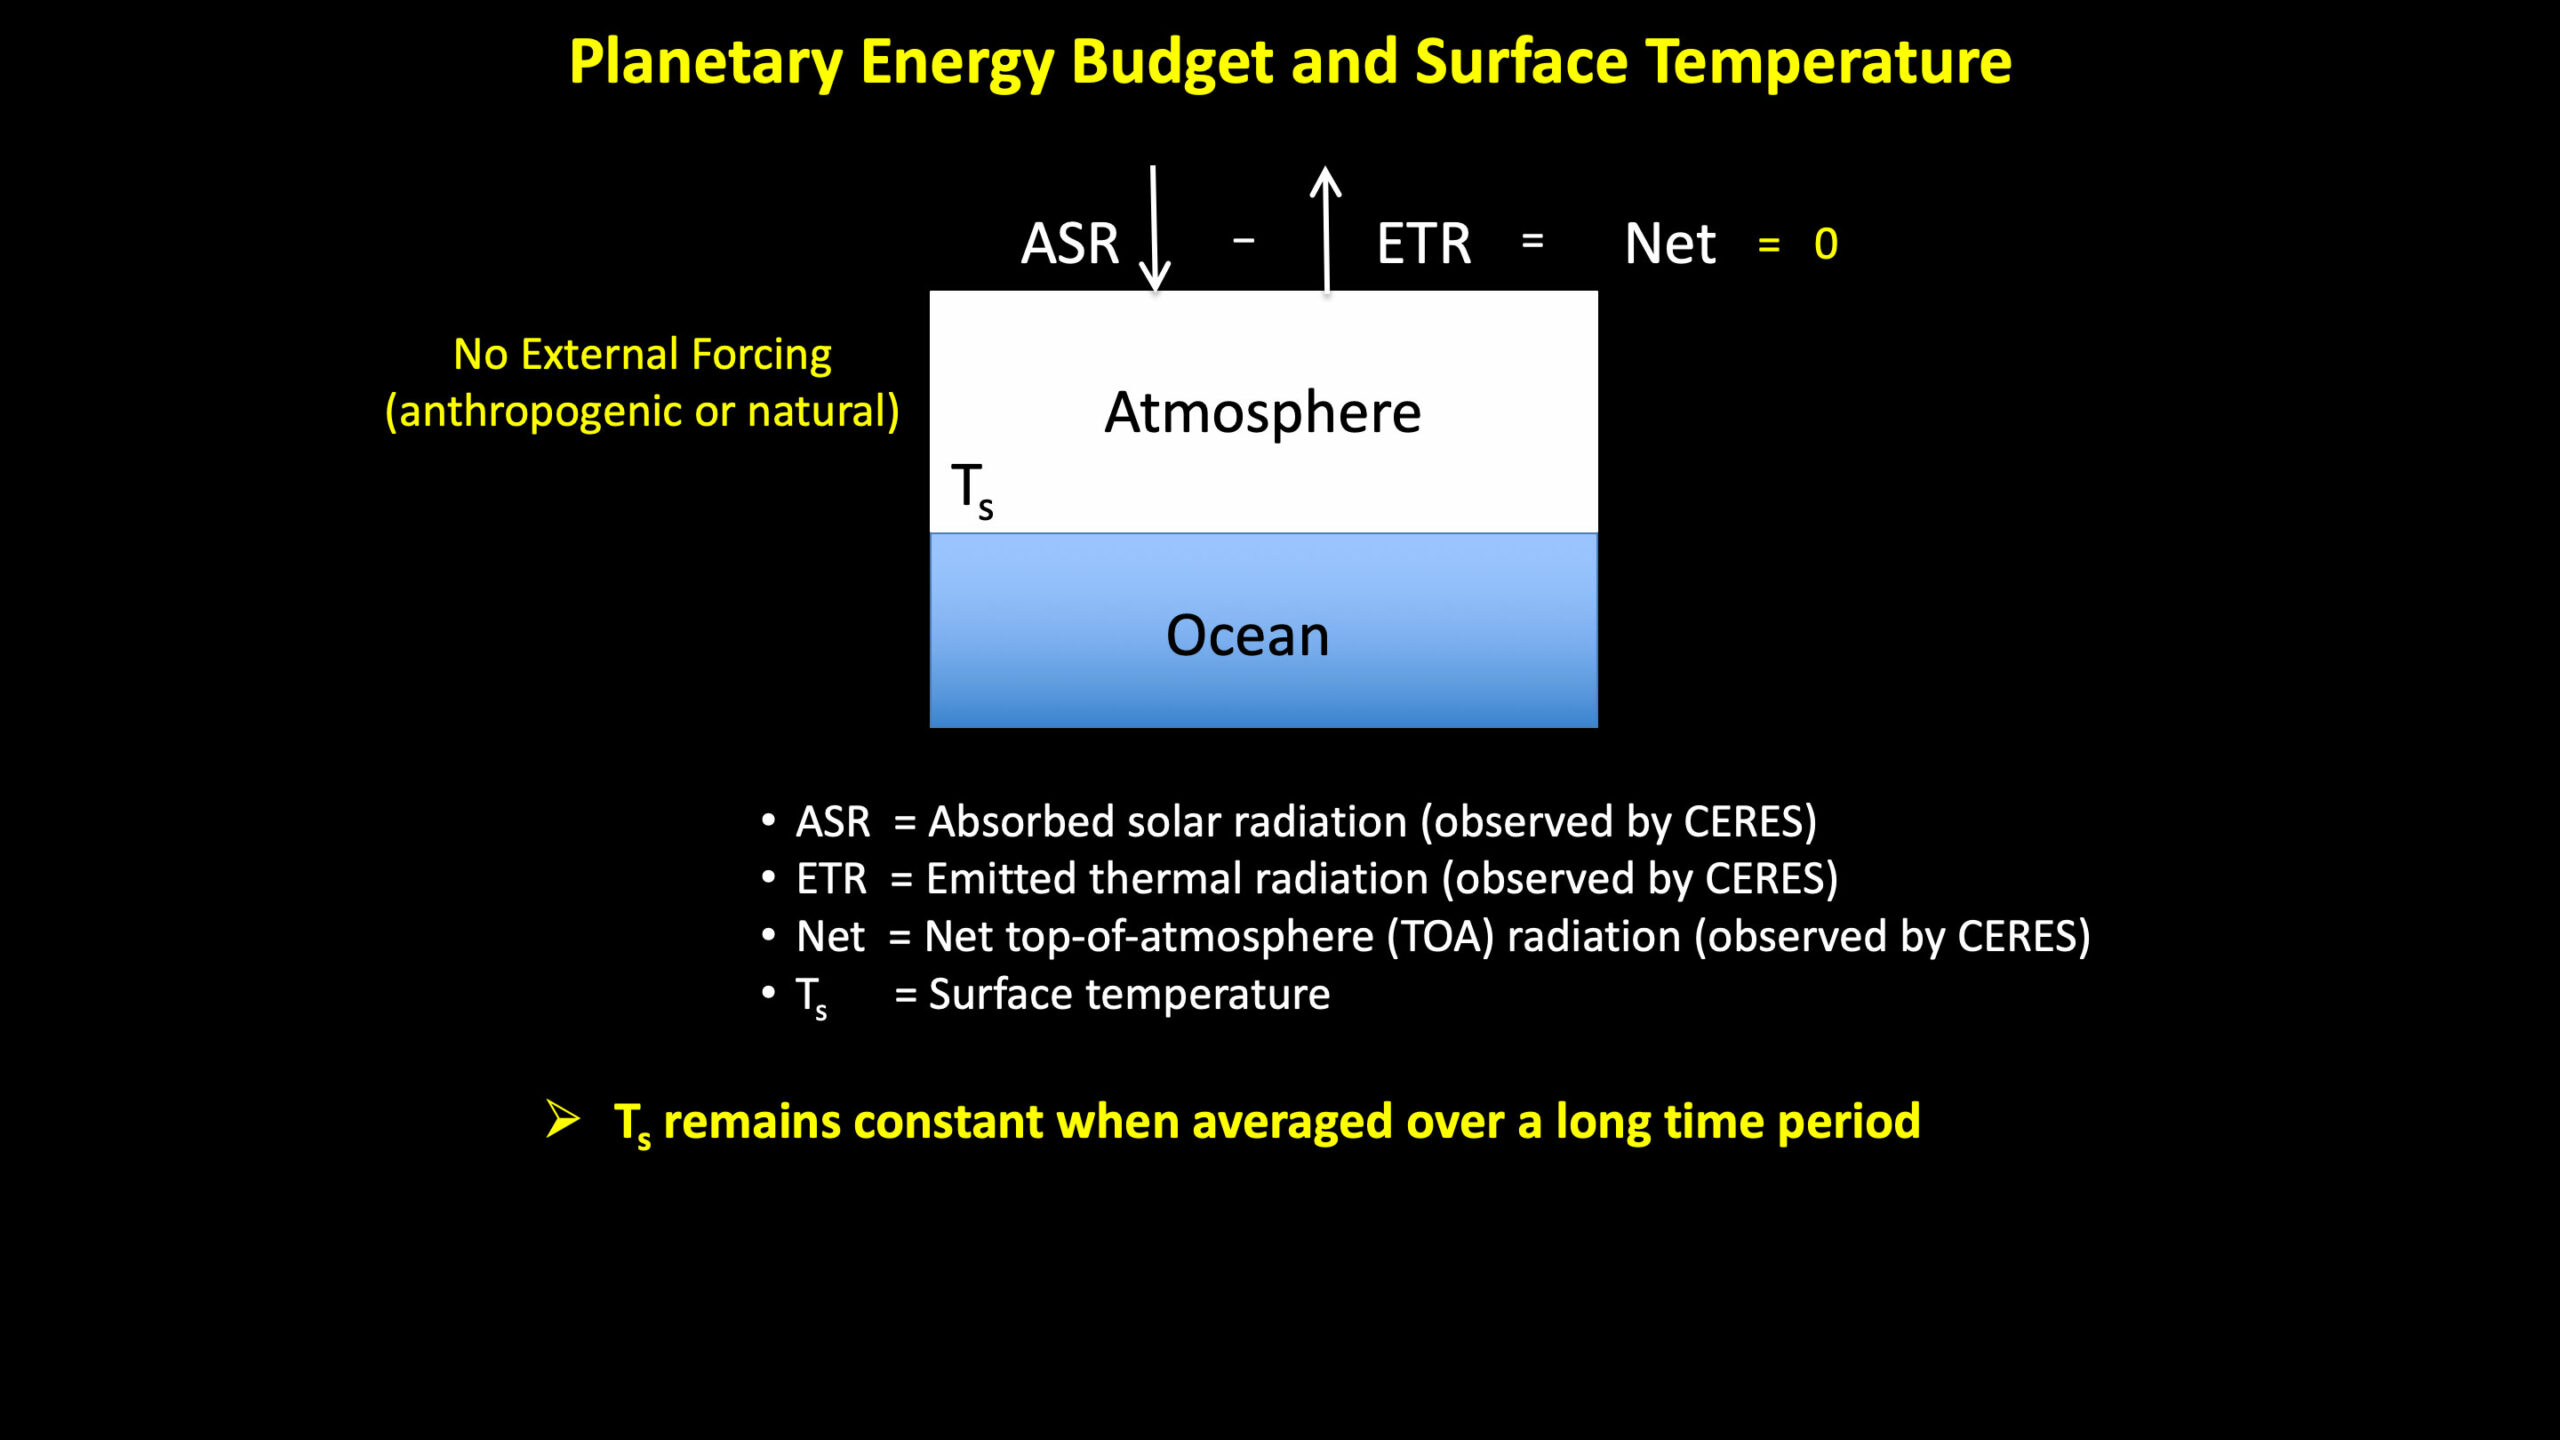 Planetary Eneergy Budget and Surface Temperature with No External Forcing